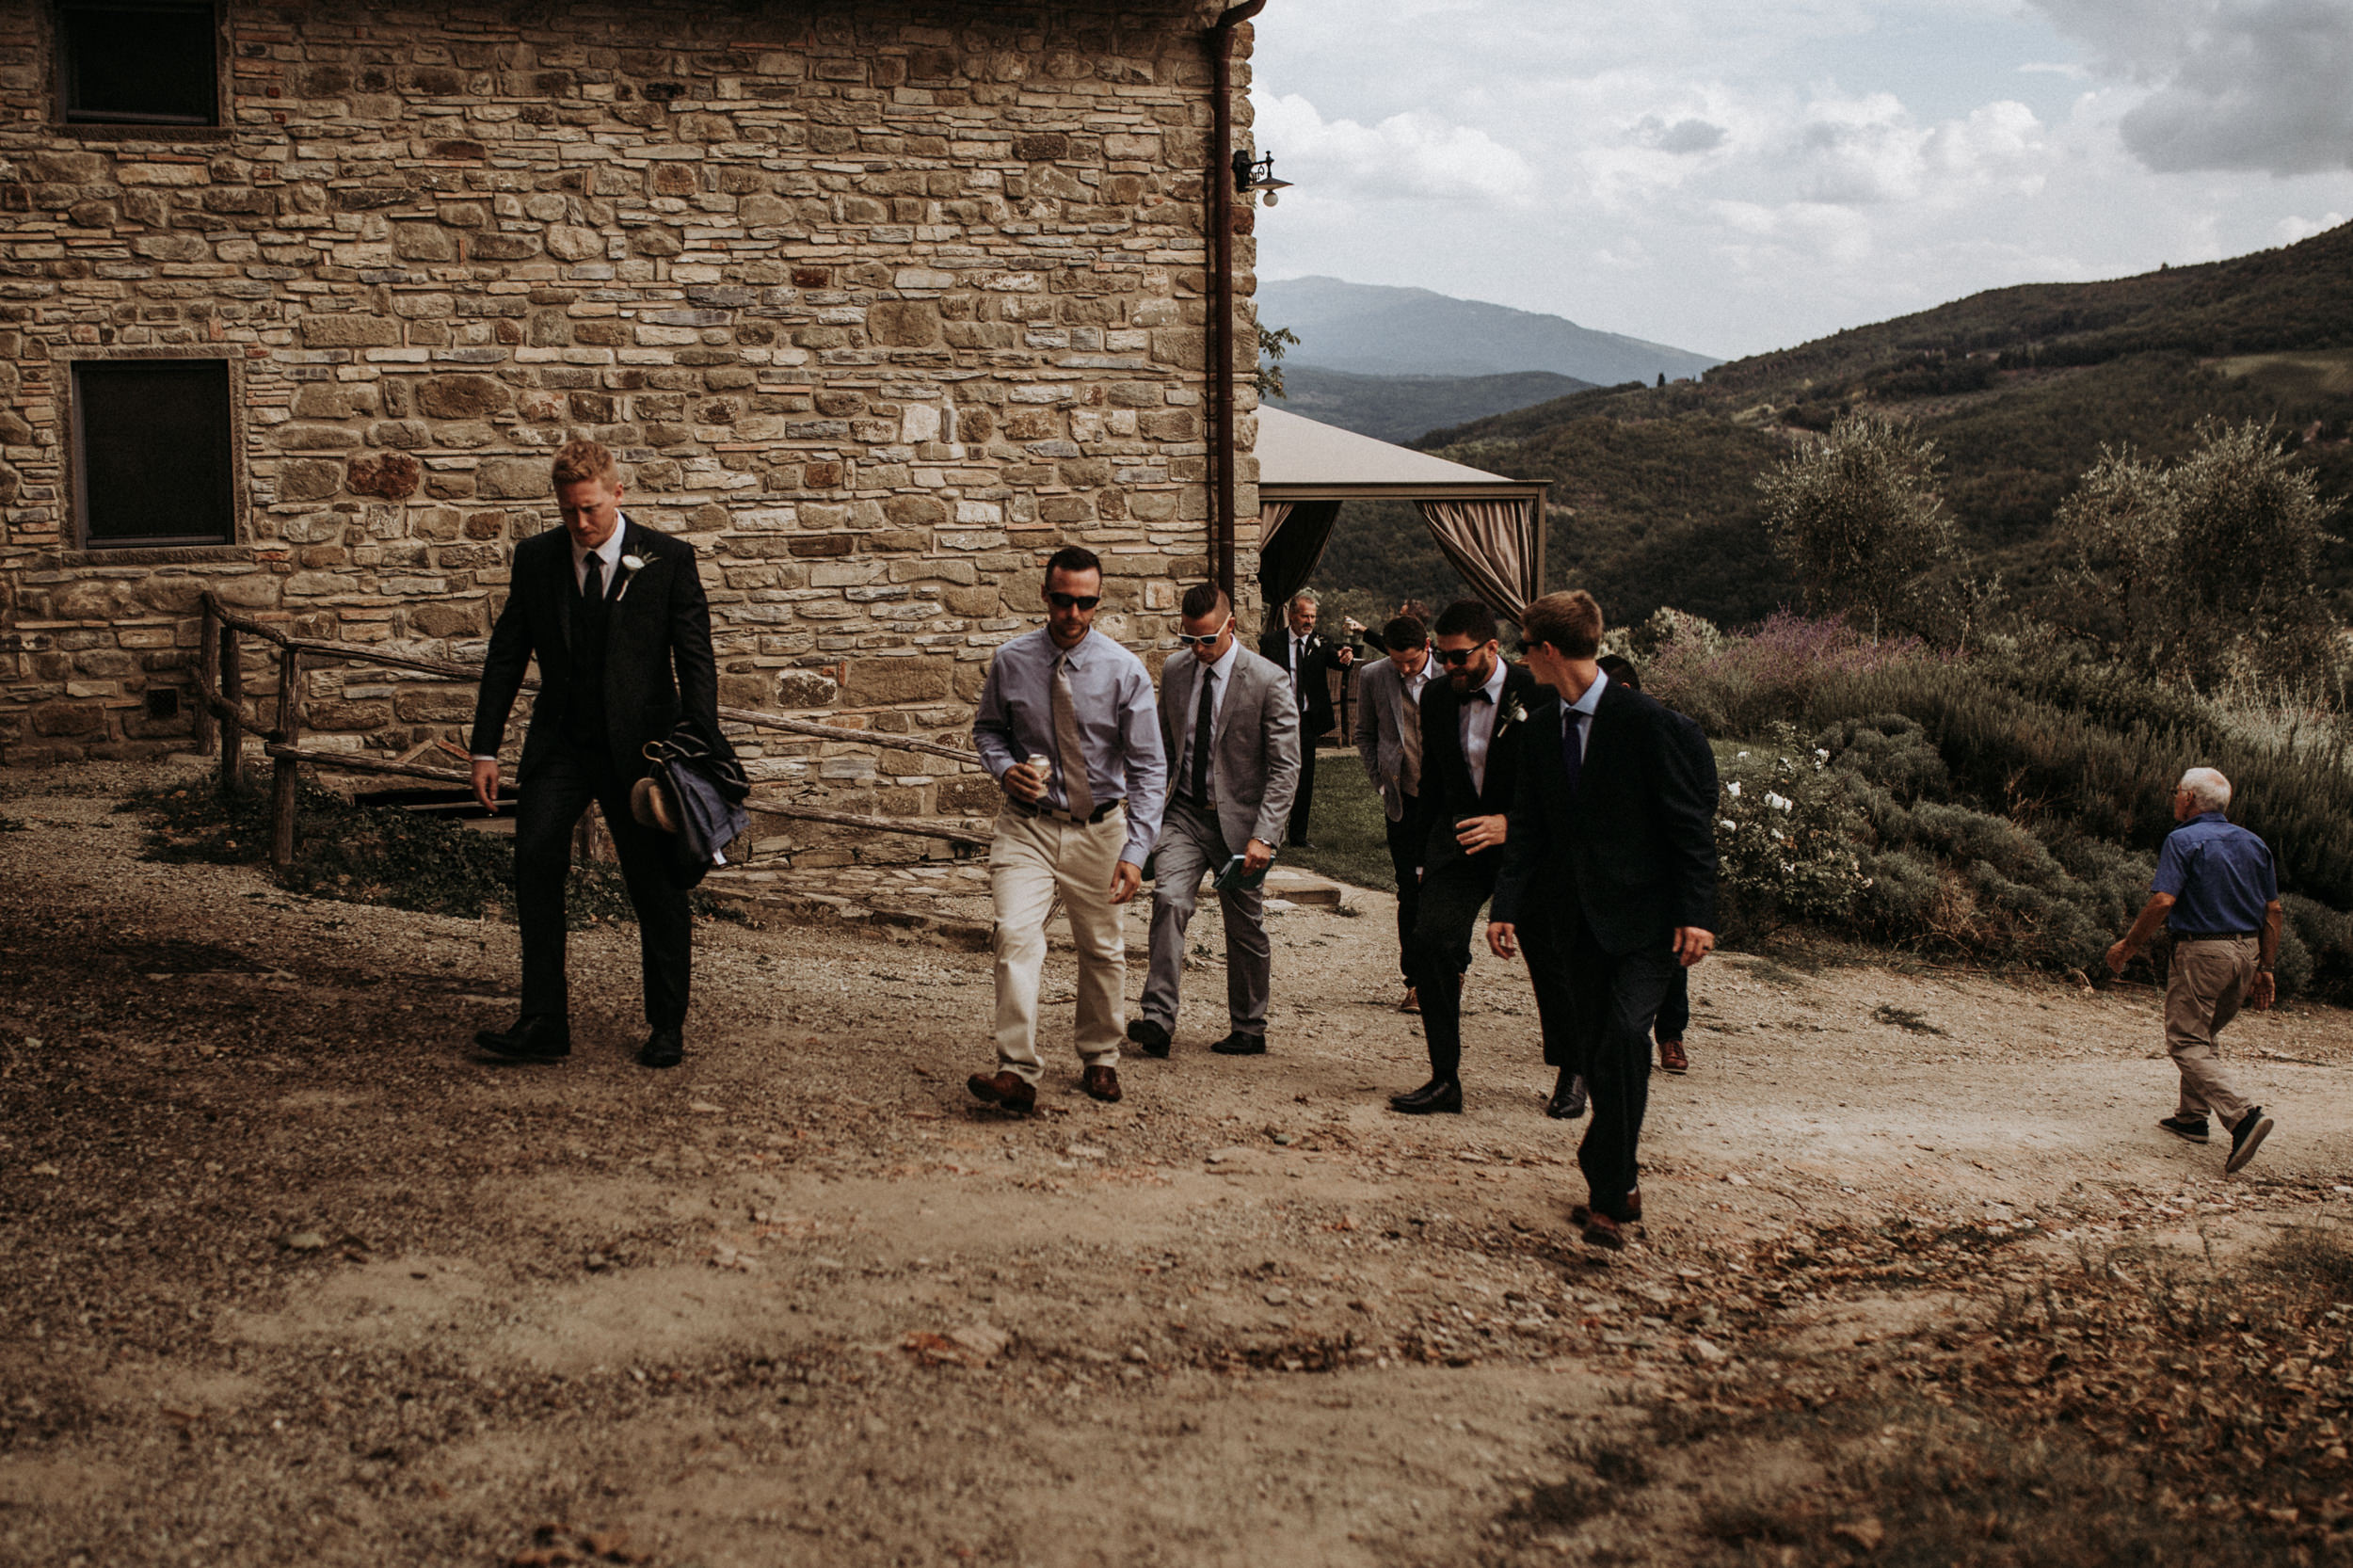 dm_photography_KW_Tuscanyweddingday_174